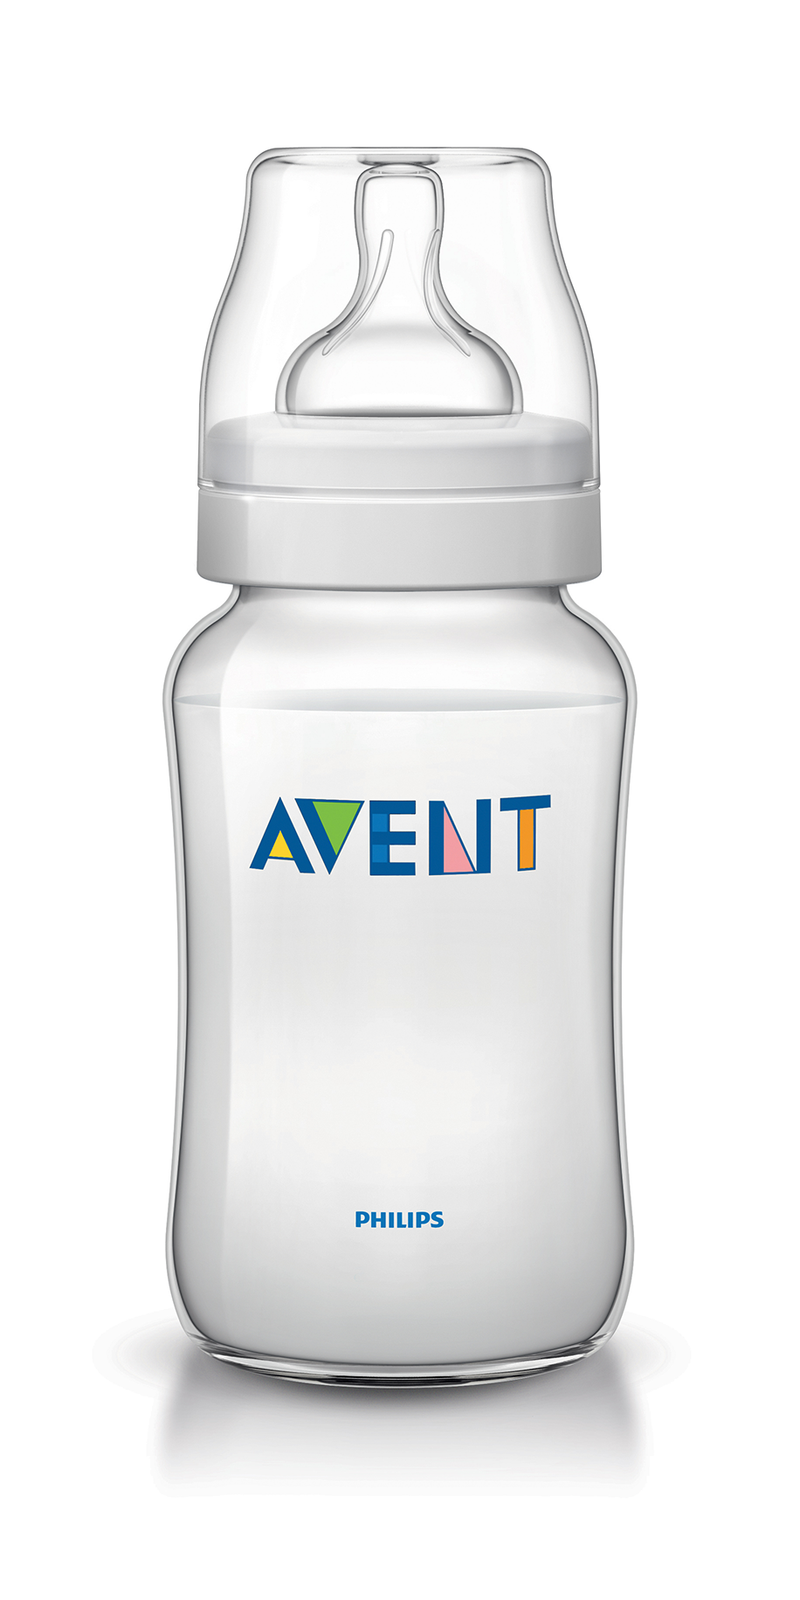 Philips AVENT Classic+ Feeding Bottle 330ml